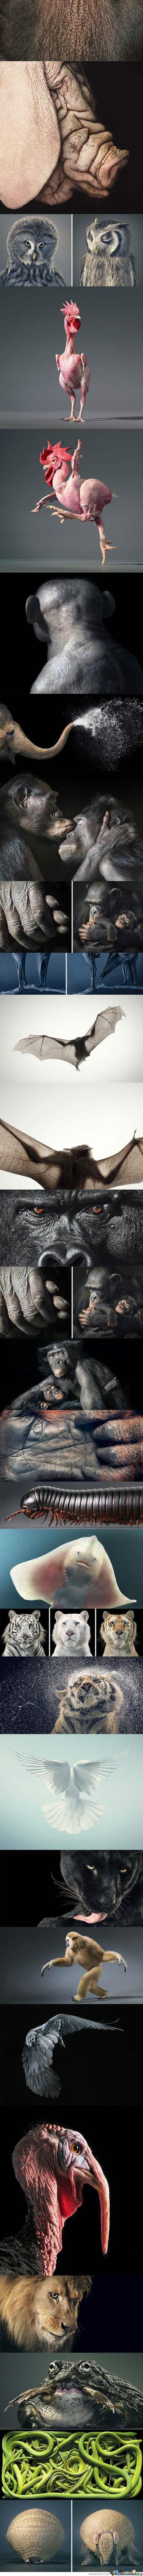 Tim Flach Animal Paintings